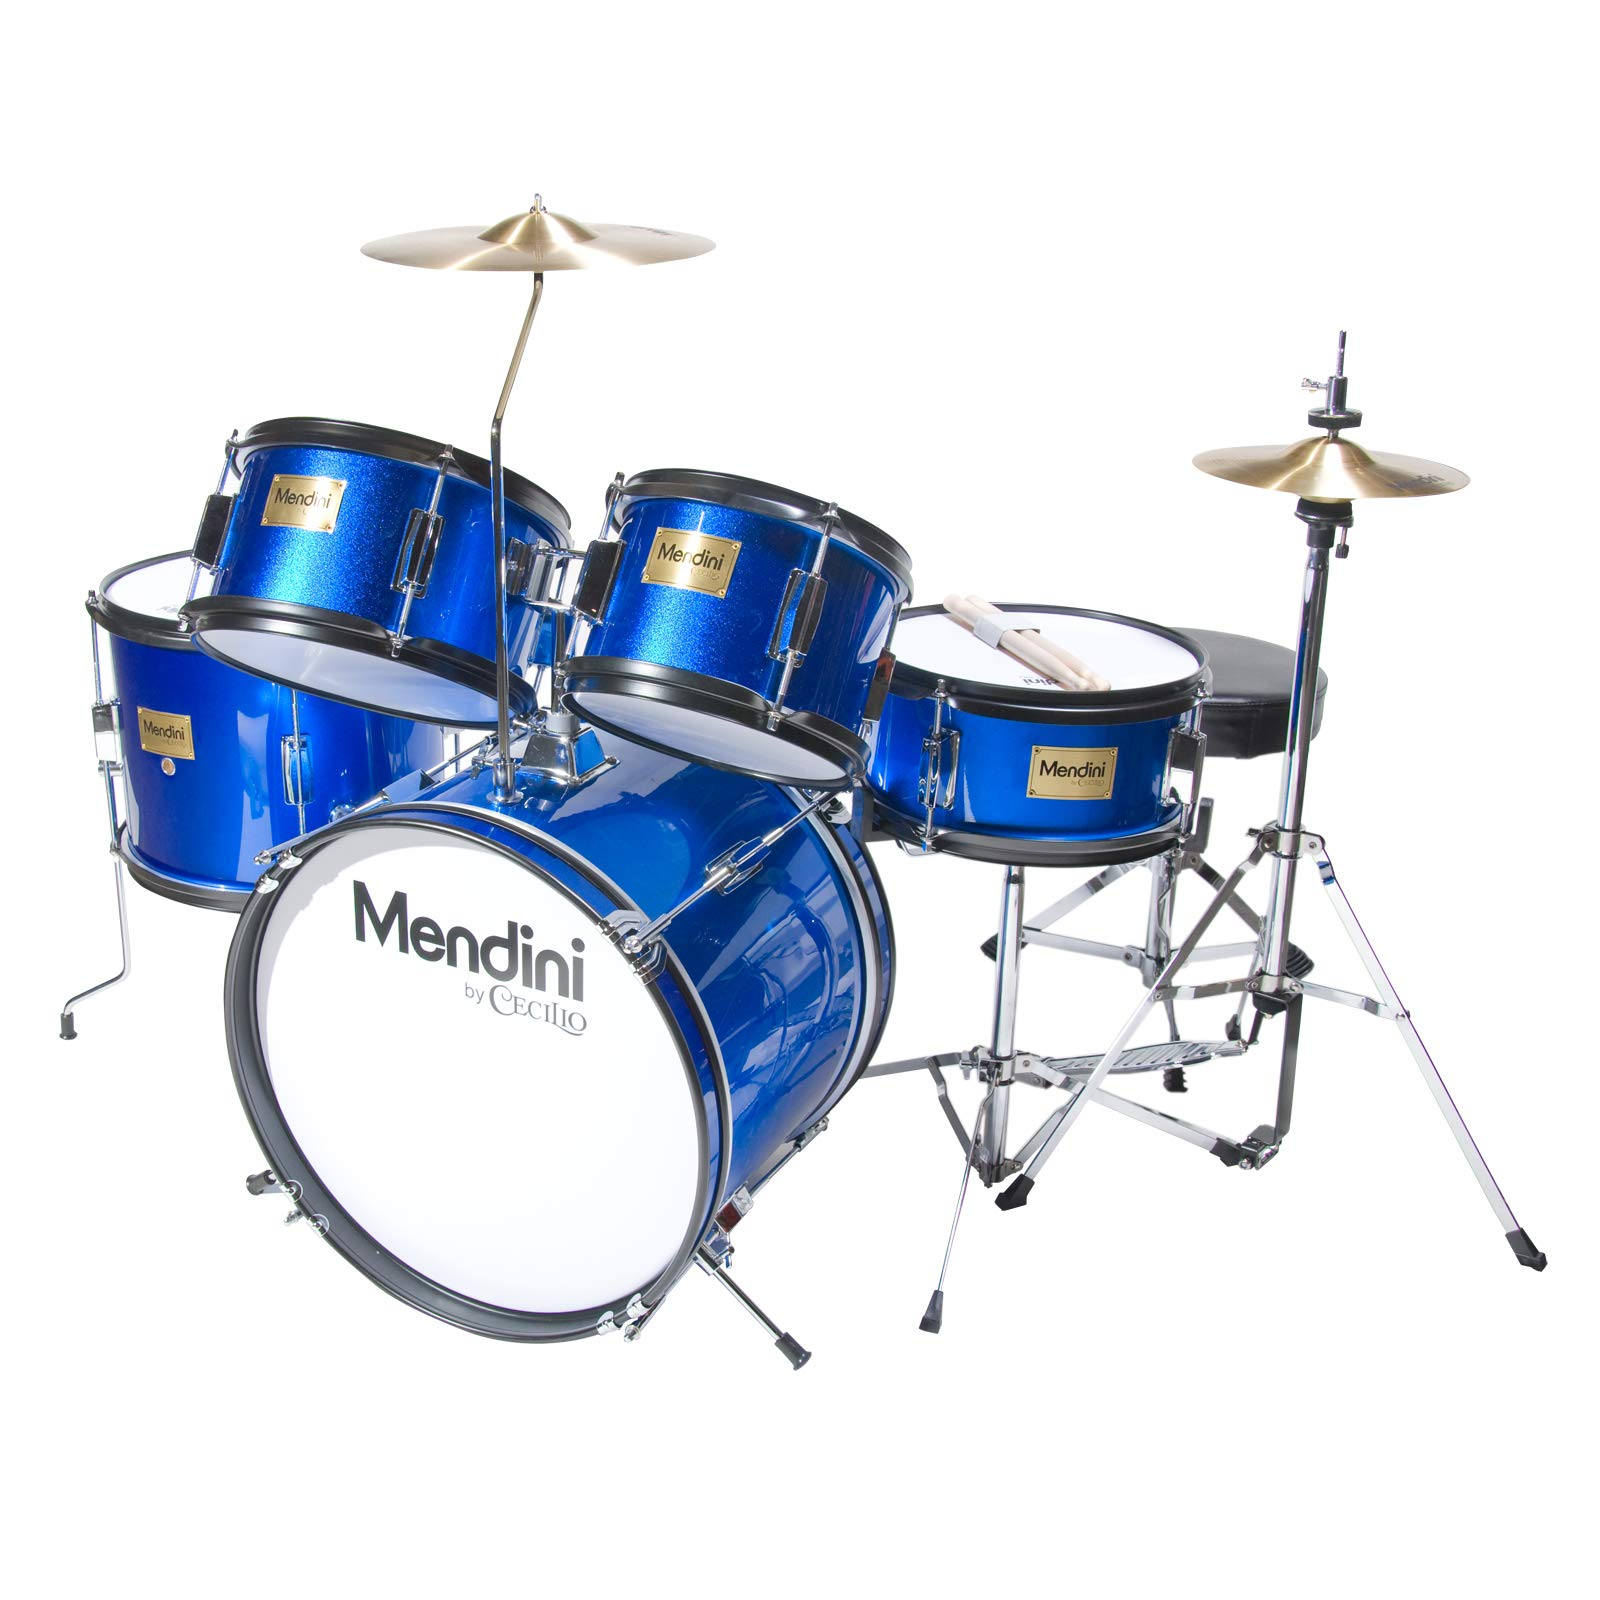 Mendini by Cecilio 16 inch 5-Piece Complete Kids / Junior Drum Set with Adjustable Throne, Cymbal, Pedal & Drumsticks, Metallic Blue, MJDS-5-BL by Mendini